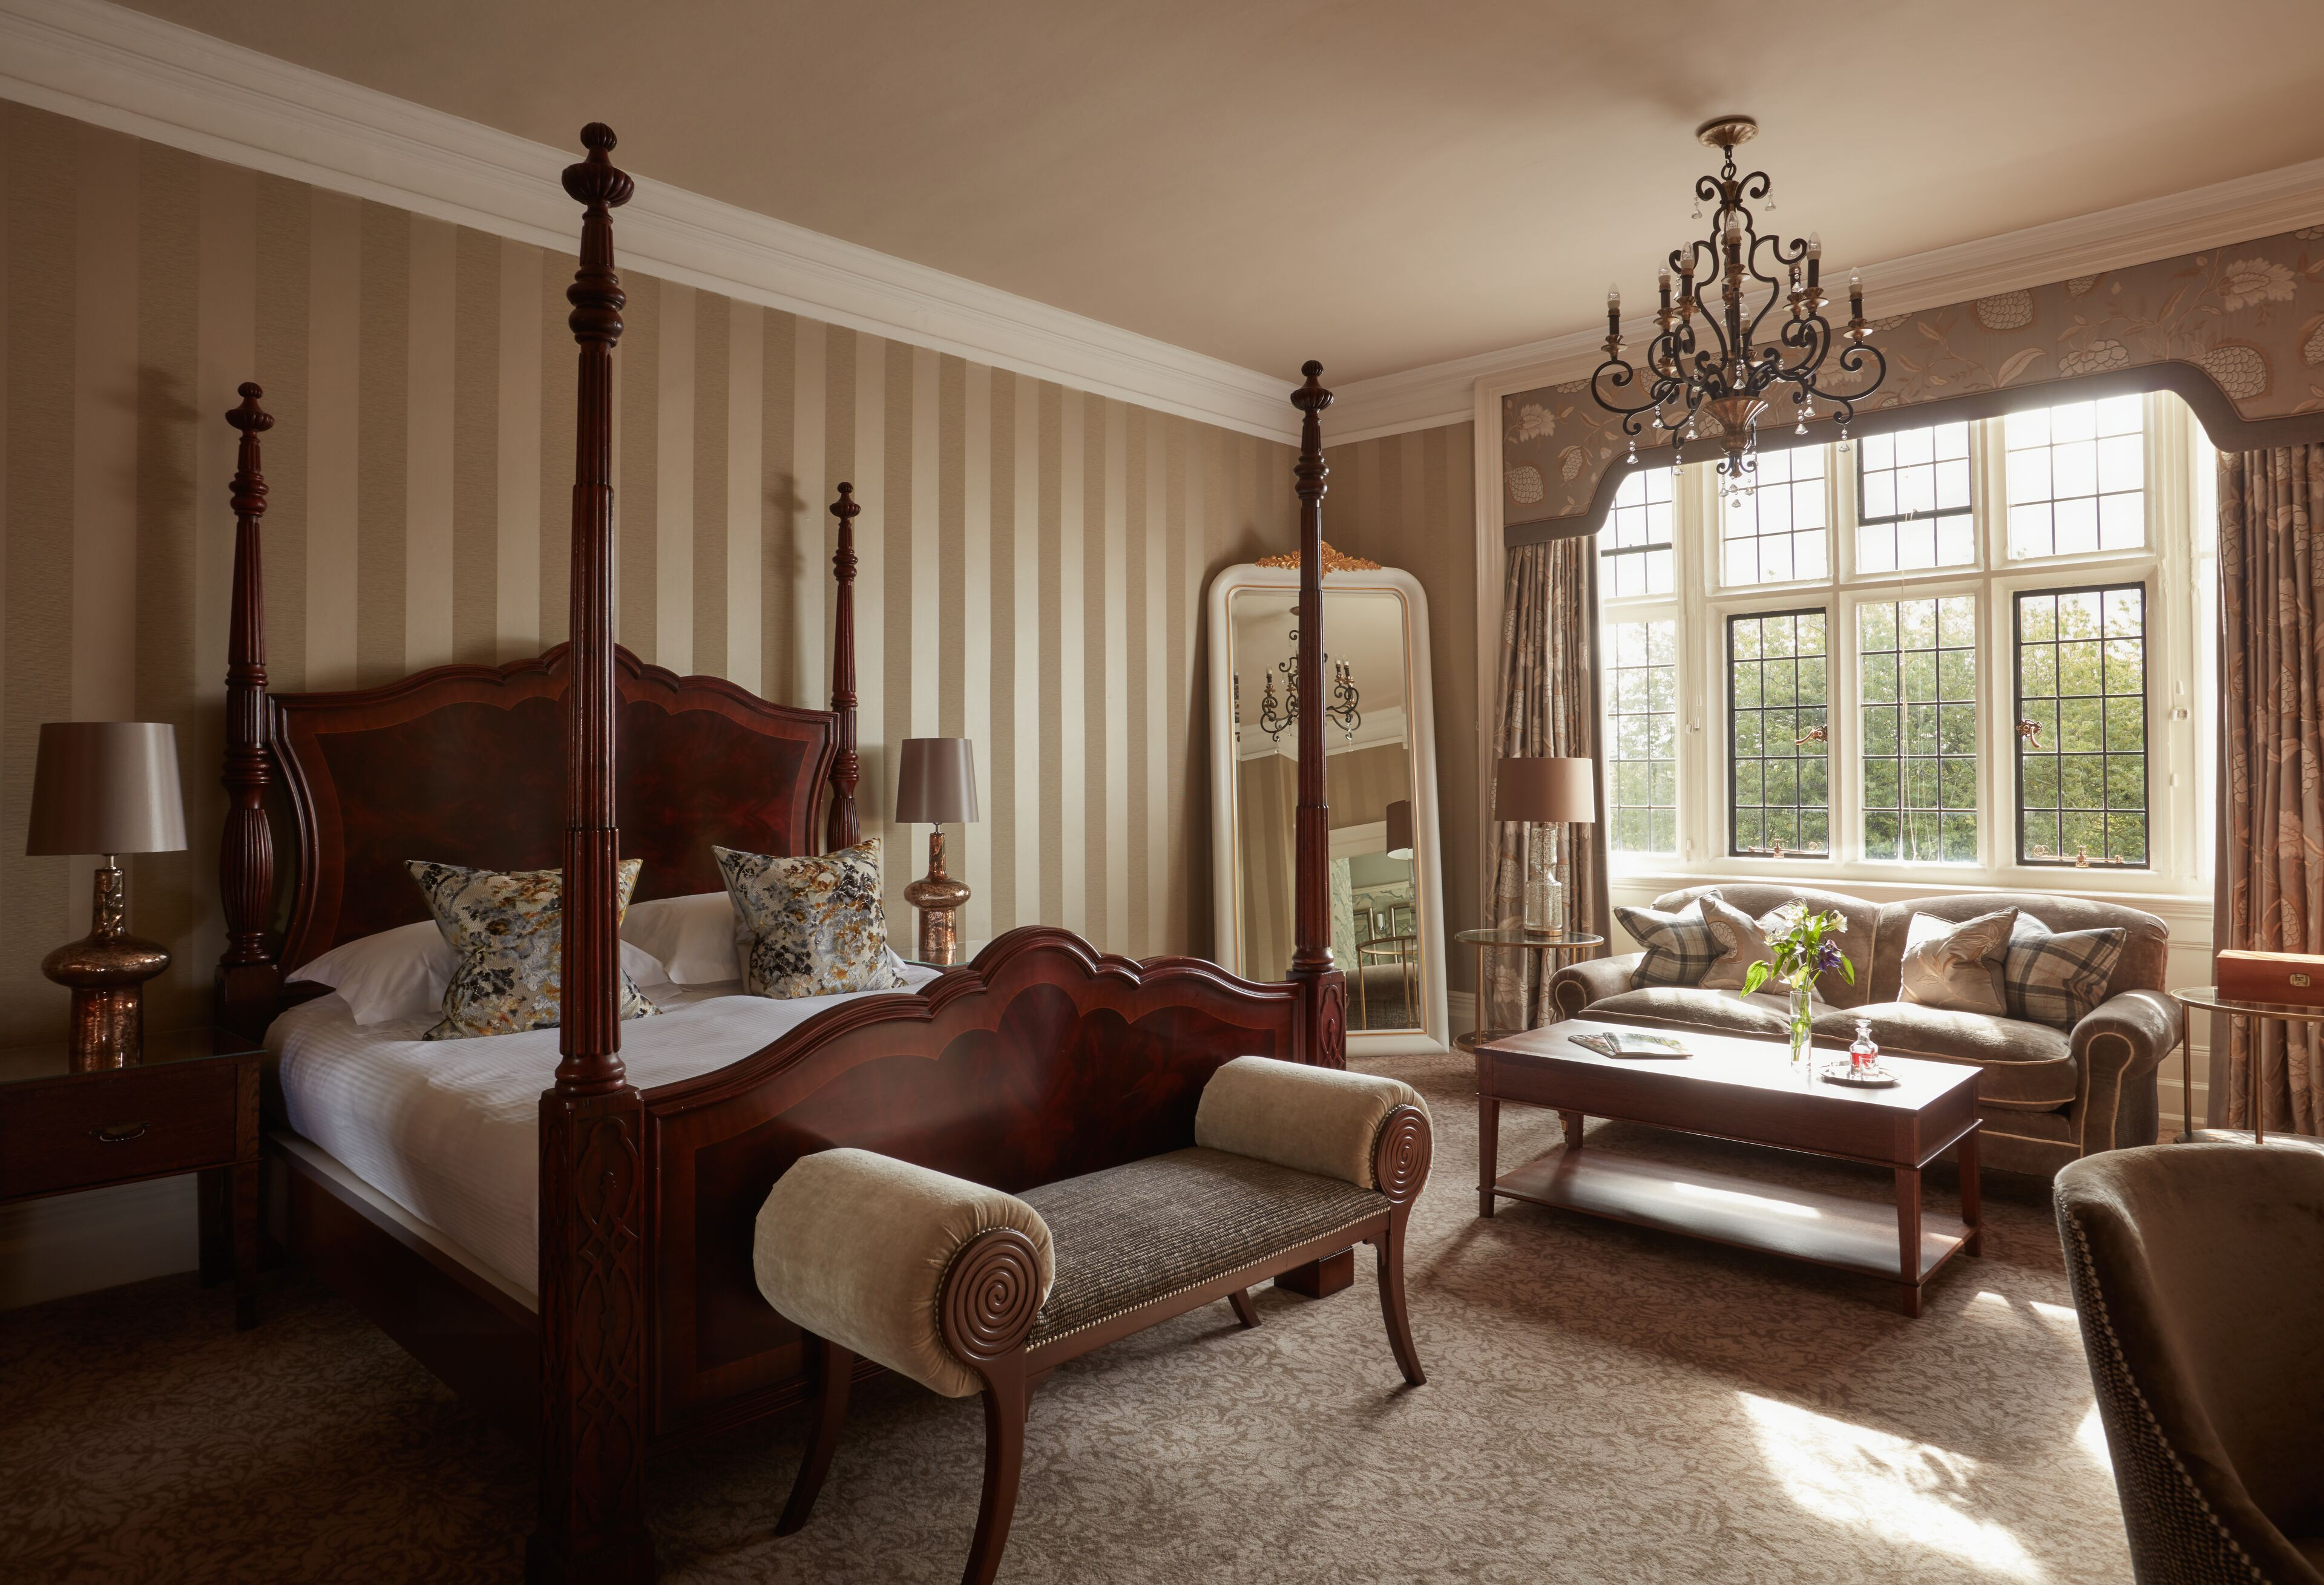 Courtesy of Bovey Castle / Expedia